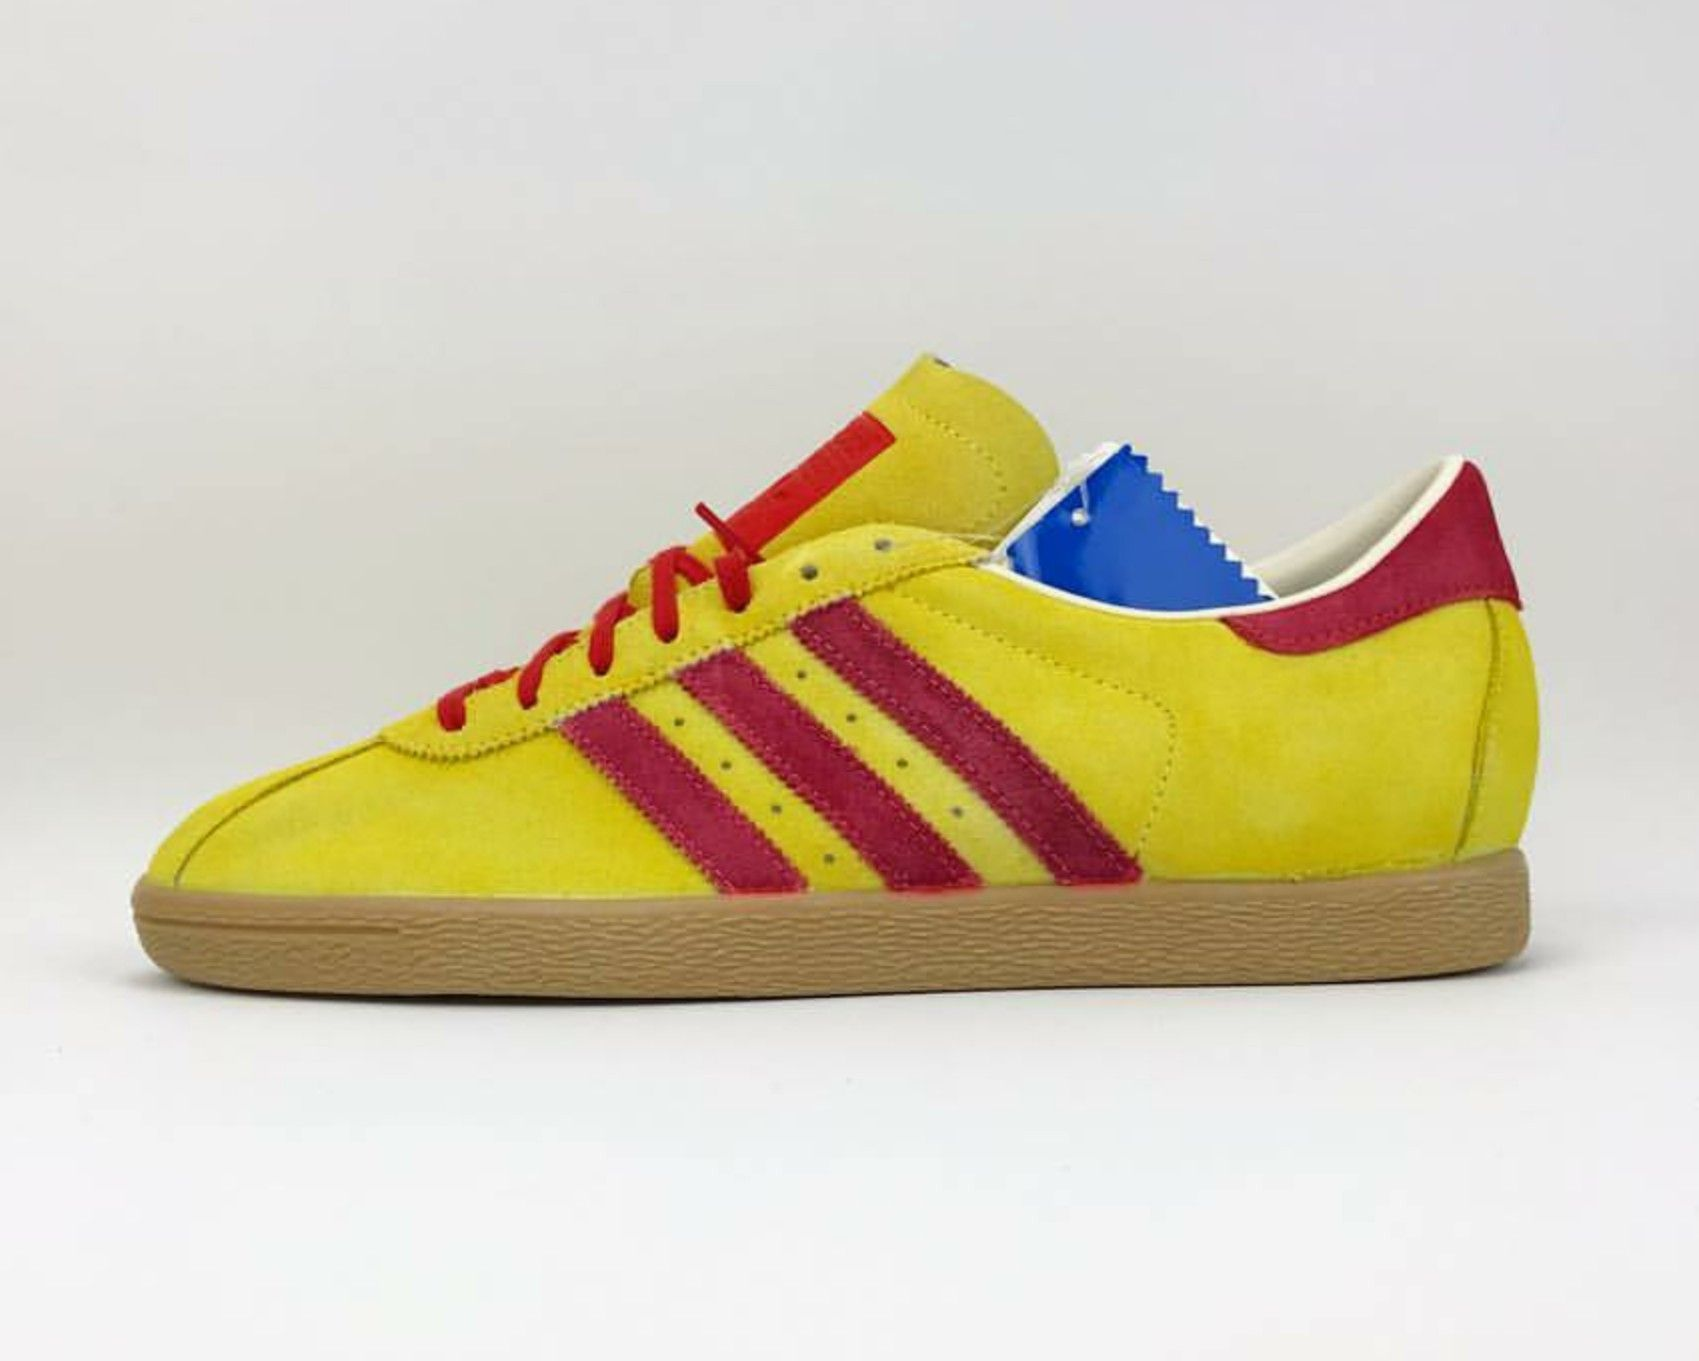 factory authentic c3cd5 548f7 Adidas Tobacco - be honest, whose seen this colourway before Part of  BobbyMs collection.